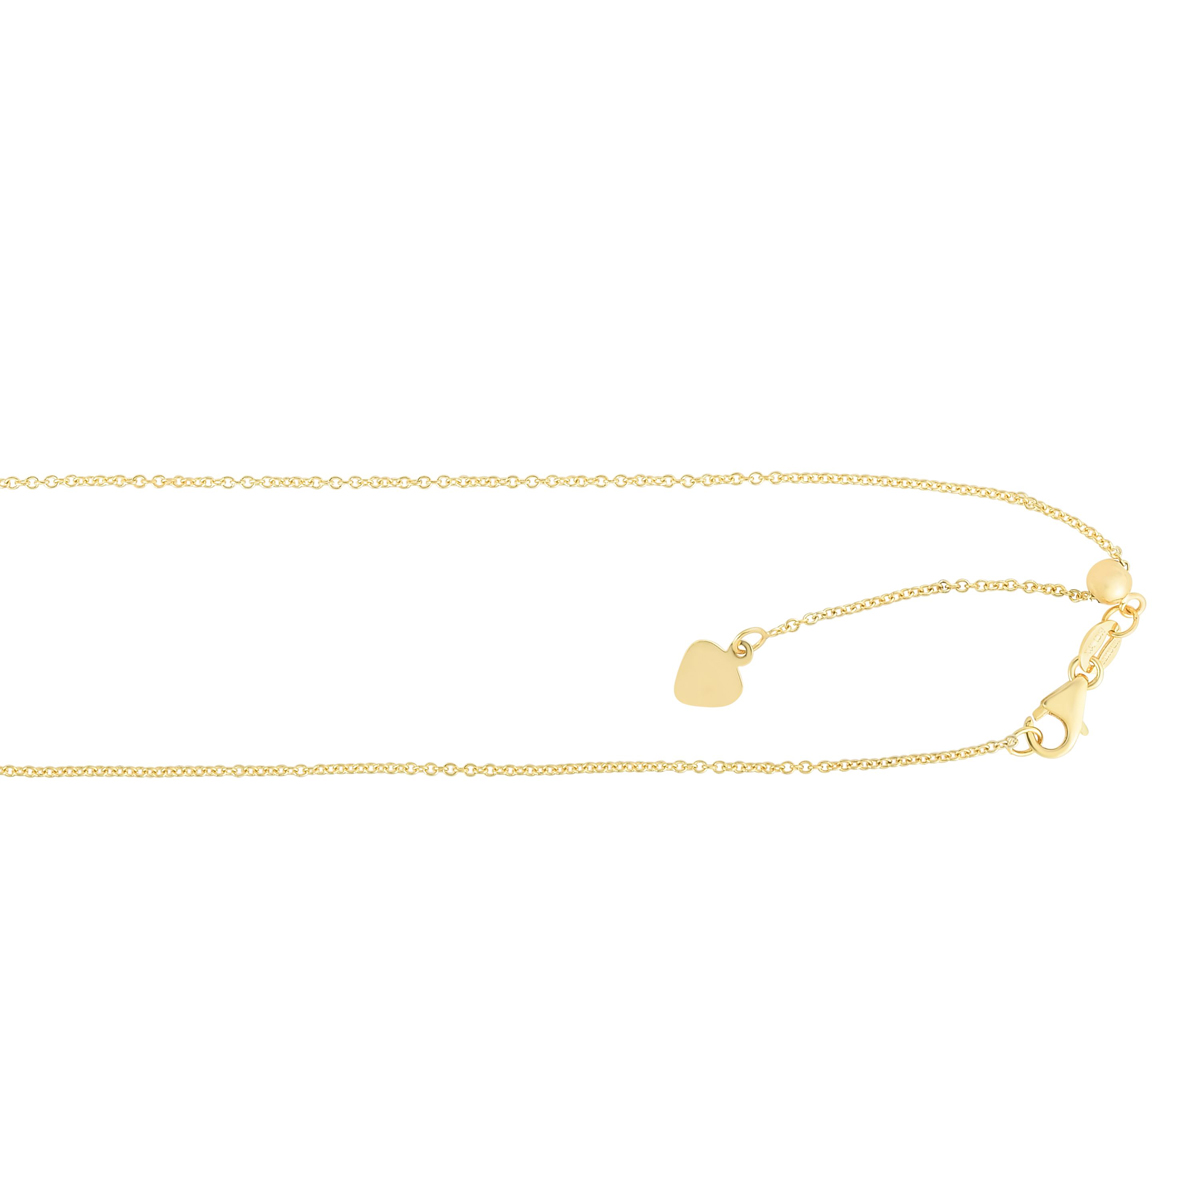 Royal Chain 14 Karat Yellow Gold 1mm Cable Chain